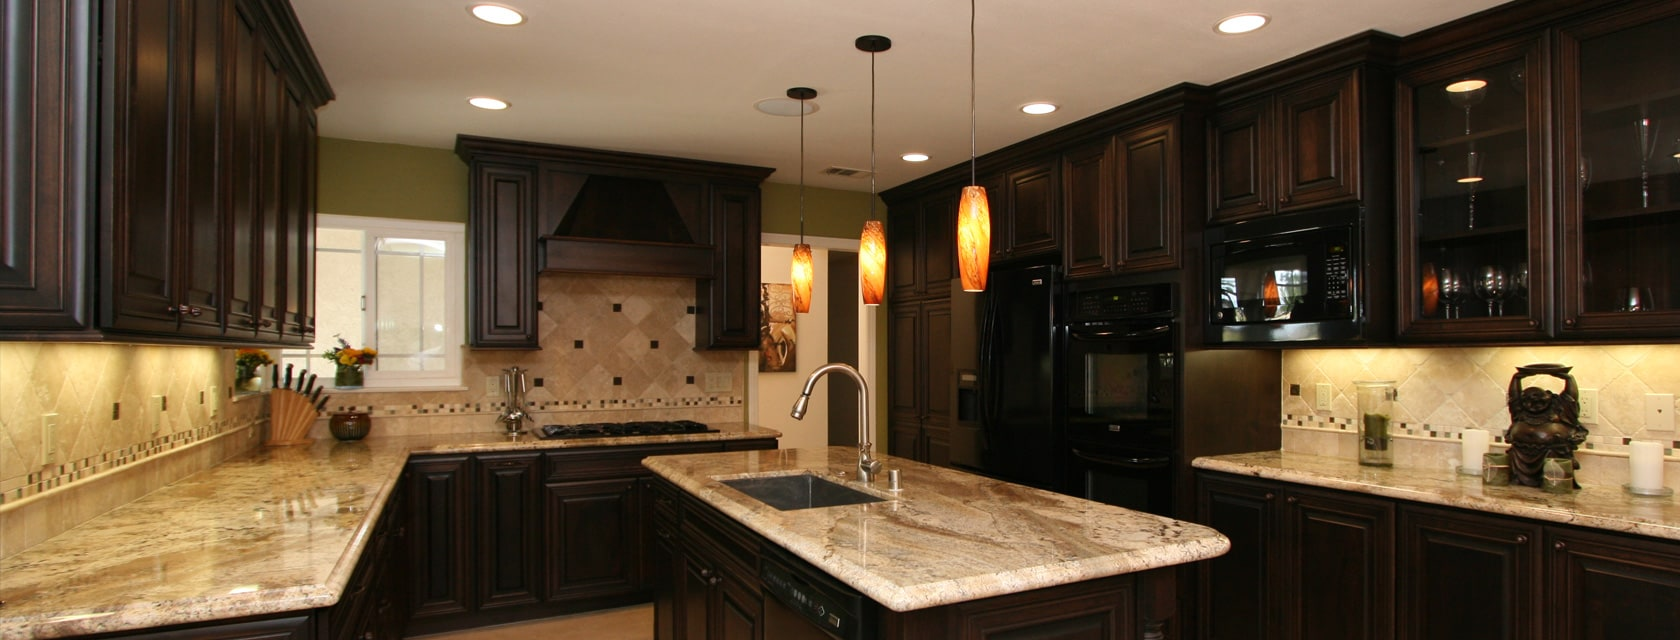 Caron construction kitchen and bathroom remodeling for Bath remodel temecula